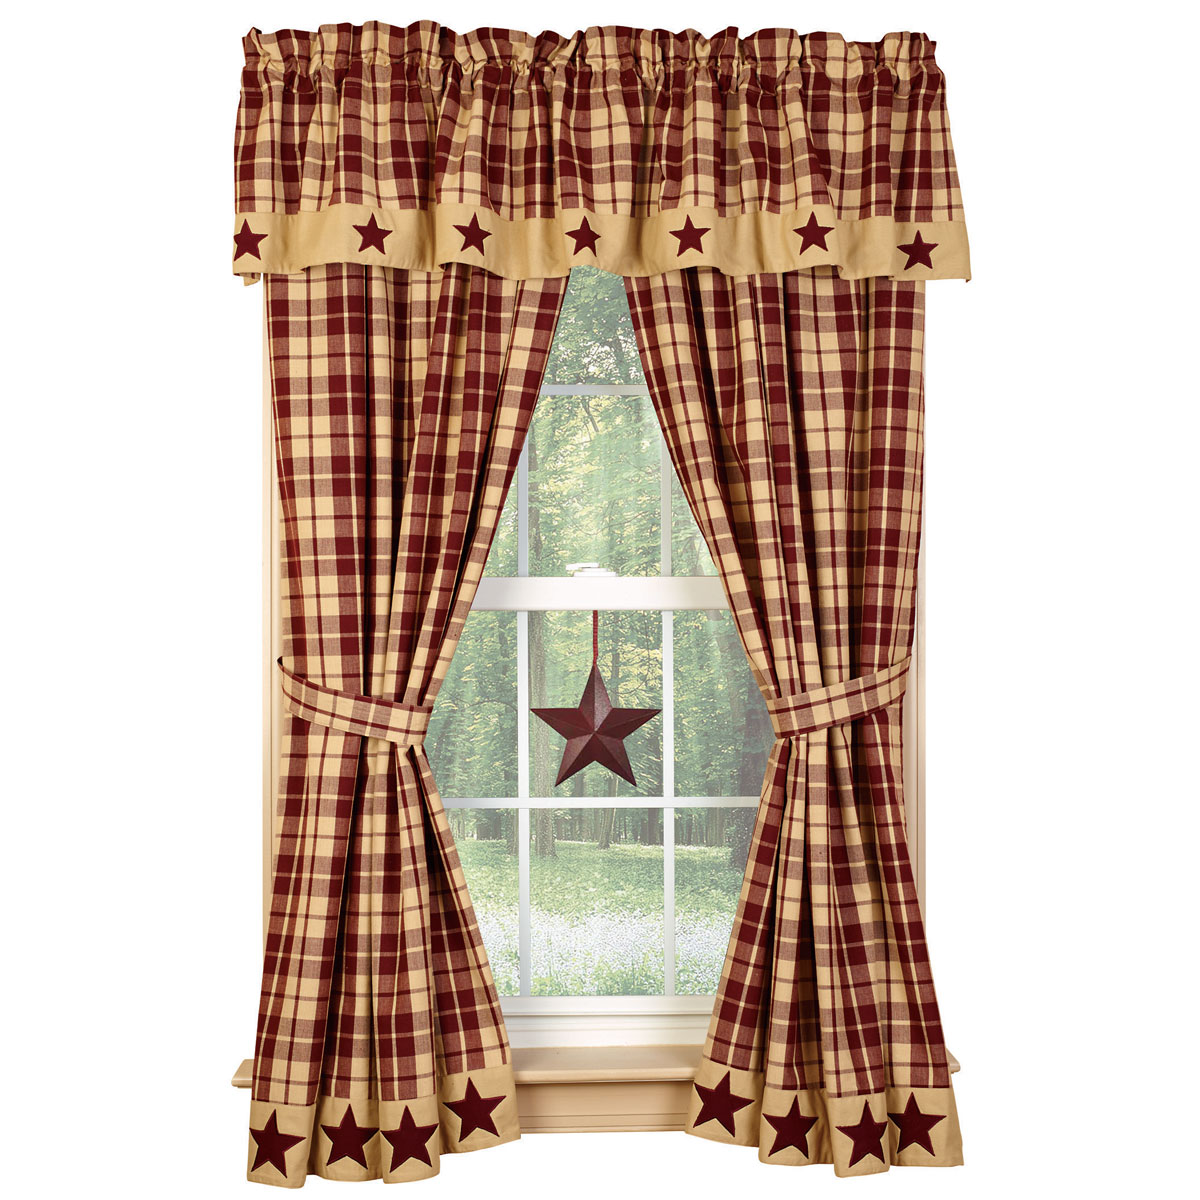 CHC-90588-Burgundy-Farmhouse-Star-63in-Curtain-Panels-LRG